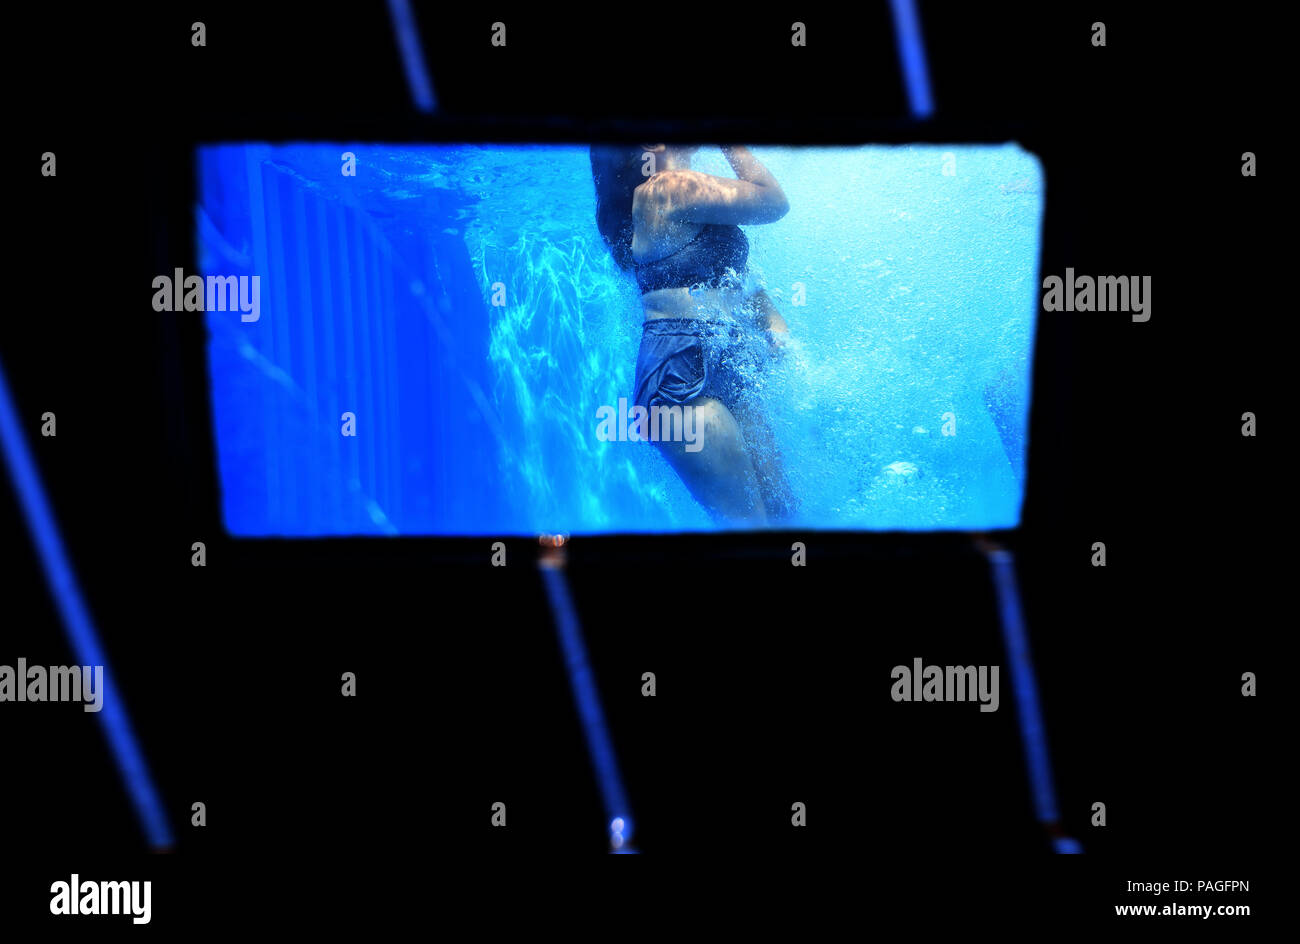 22 July 2018, Germany, Essen: A girl jumps into the works swimming pool on the premises of the coking plant of the Zollverein Coal Mine Industrial Complex (Zeche Zollverein) and can be seen through a window in the pool. The Frankfurt artists Dirk Paschke and Daniel Milohnic created the work swimming pool in 2001 in the course of the art project 'Zeitgenoessische Kunst und Kritik' (lit. contemporary art and criticism). Photo: Ina Fassbender/dpa - ATTENTION: editorial use only in connection with the latest coverage and only if the credit mentioned above is referenced in full - Stock Image